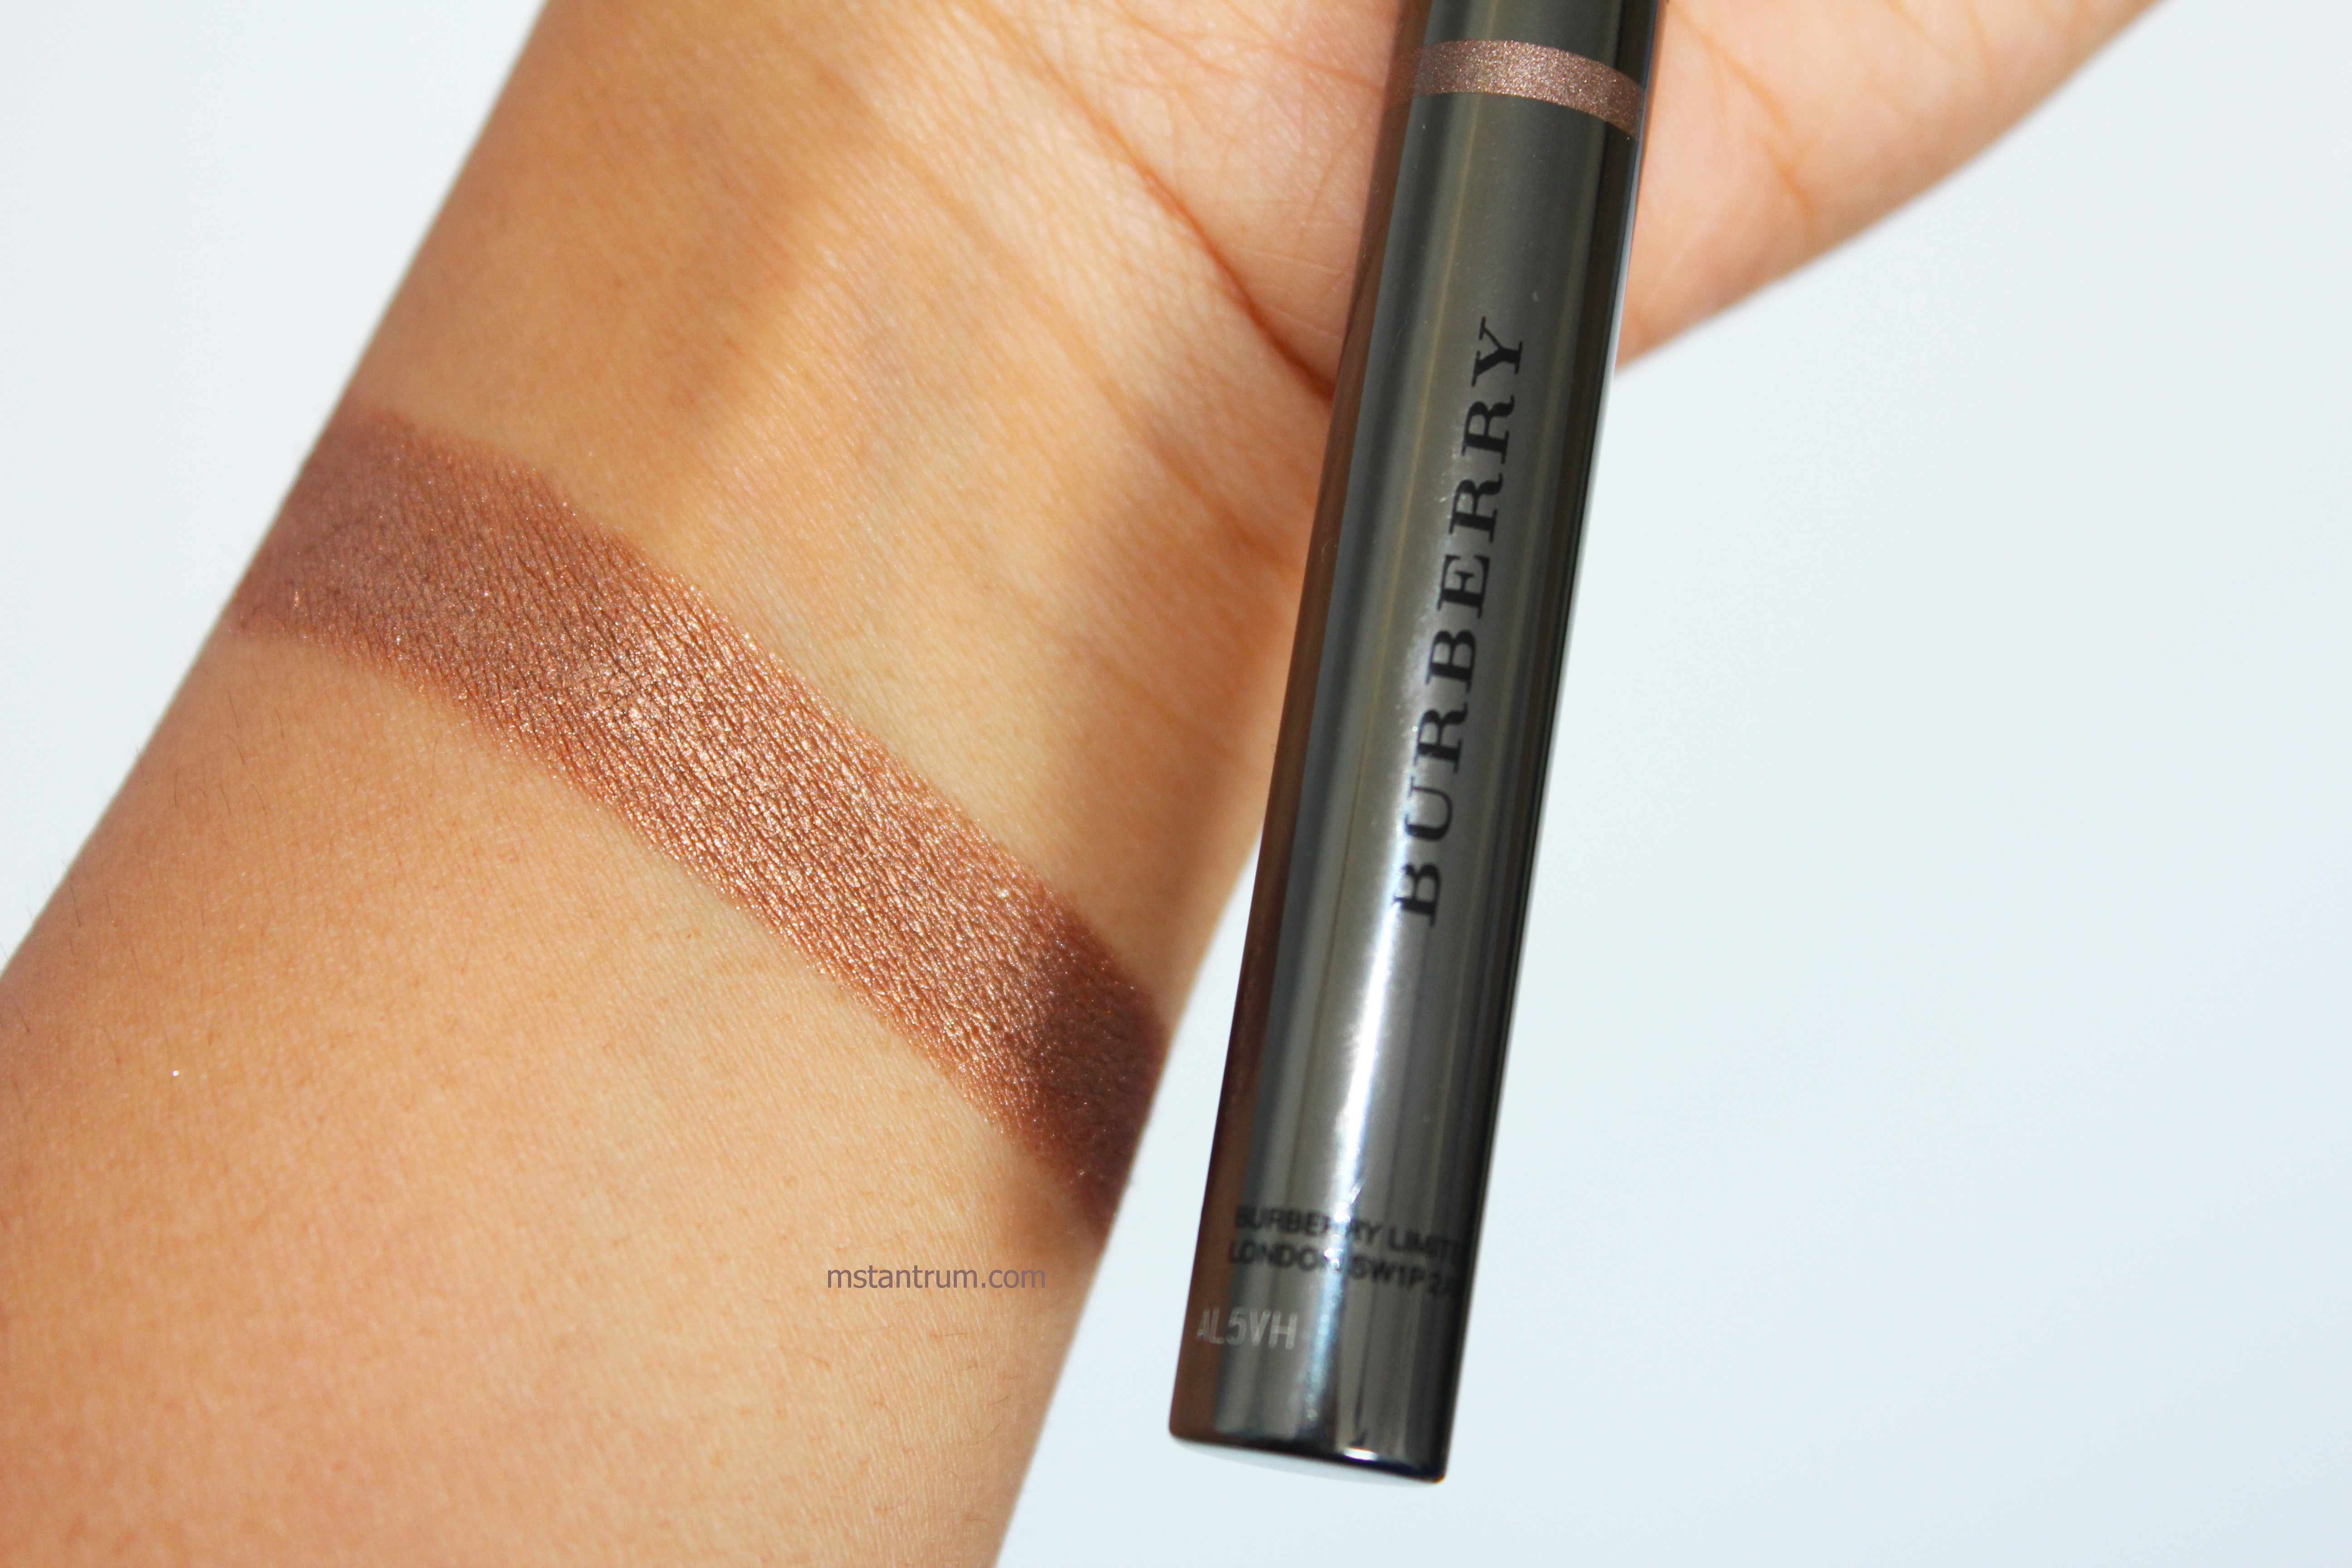 burberry pale copper eyeshadow stick swatch with Flash